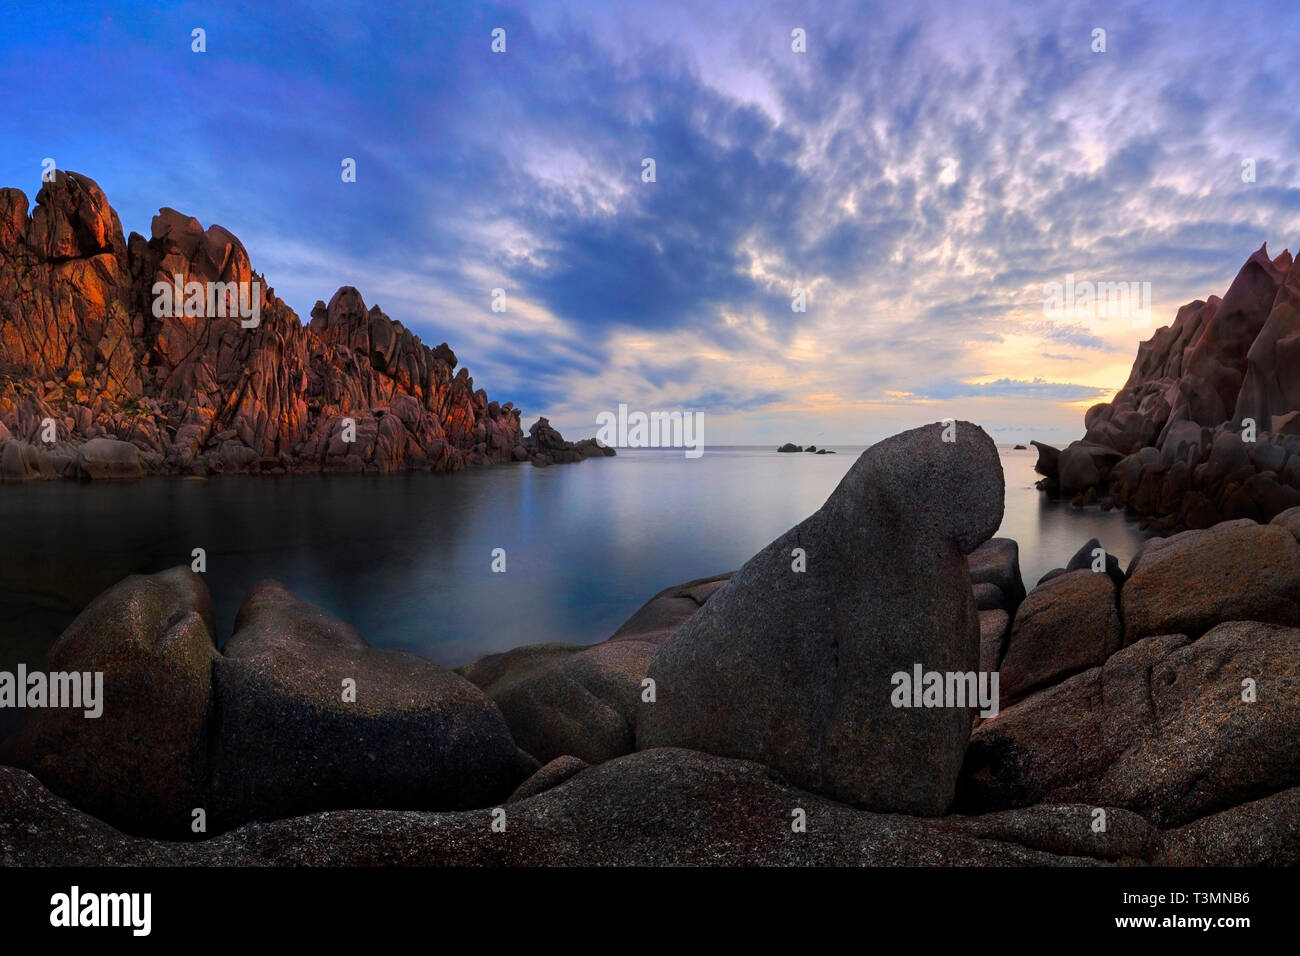 A view at dusk of some wonderful granite and sandstone rocky formations carved into surreal shapes by the action of winds and waves. This is Valle del Stock Photo